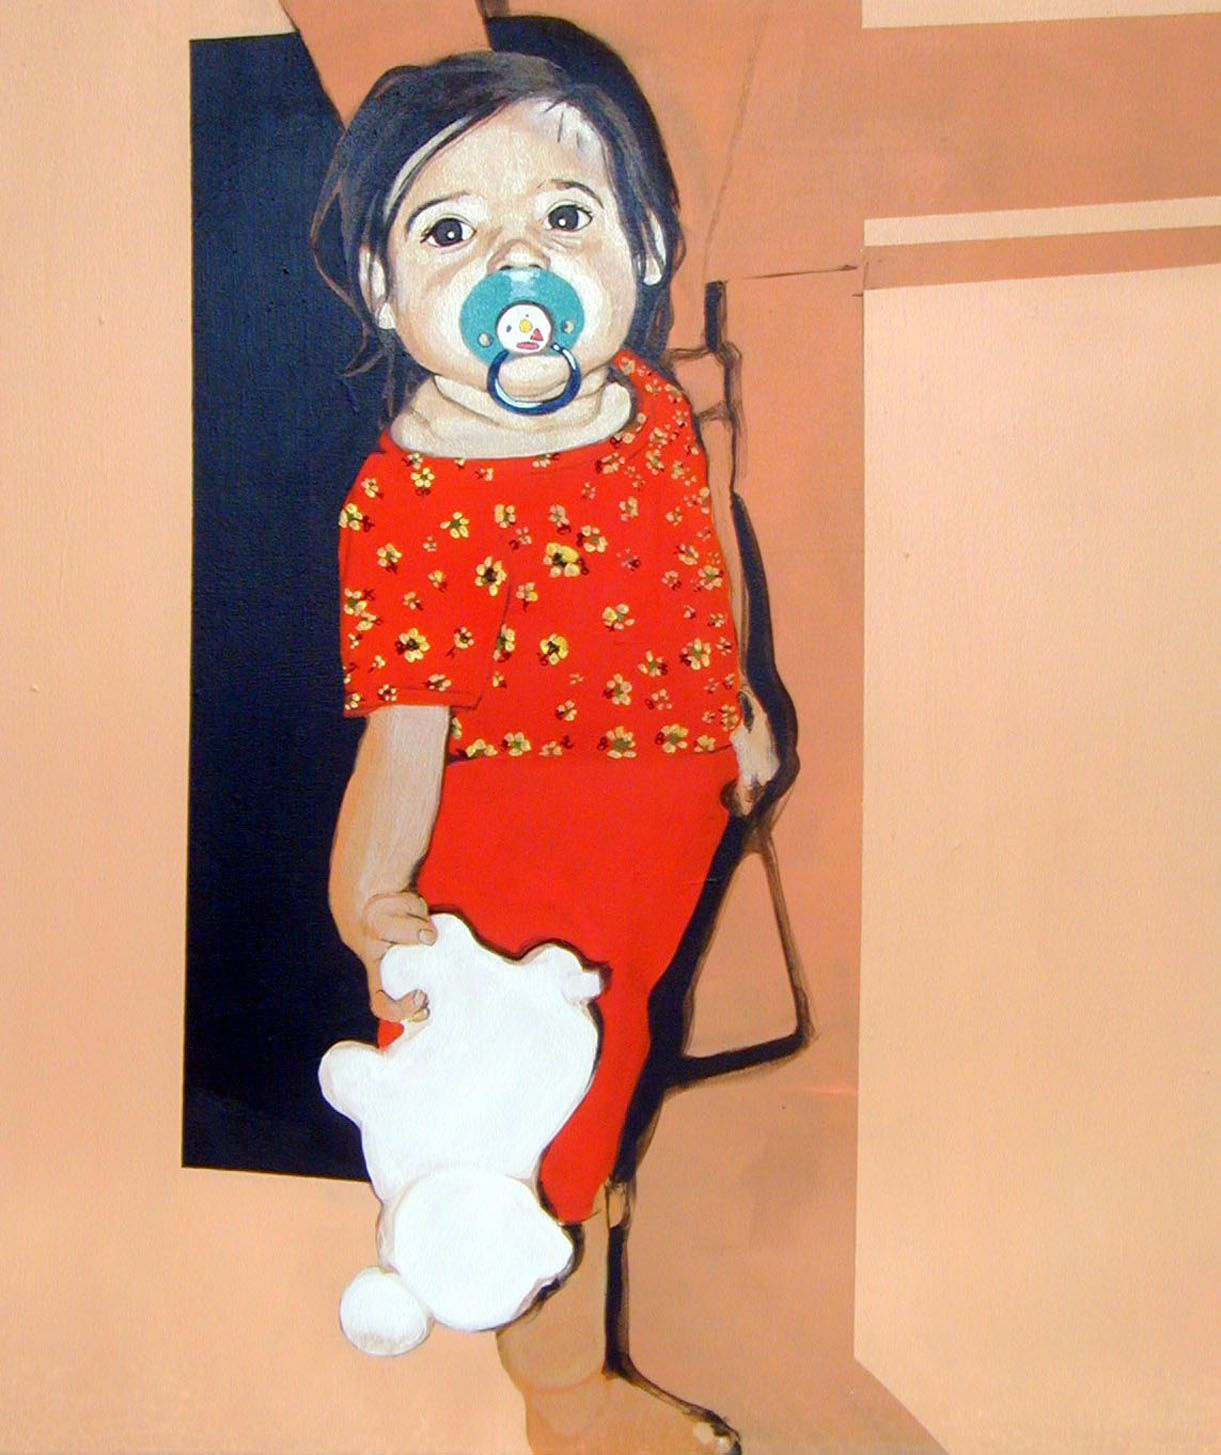 portrait of a toddler with pacifier and stuffed animal by franziska holstein